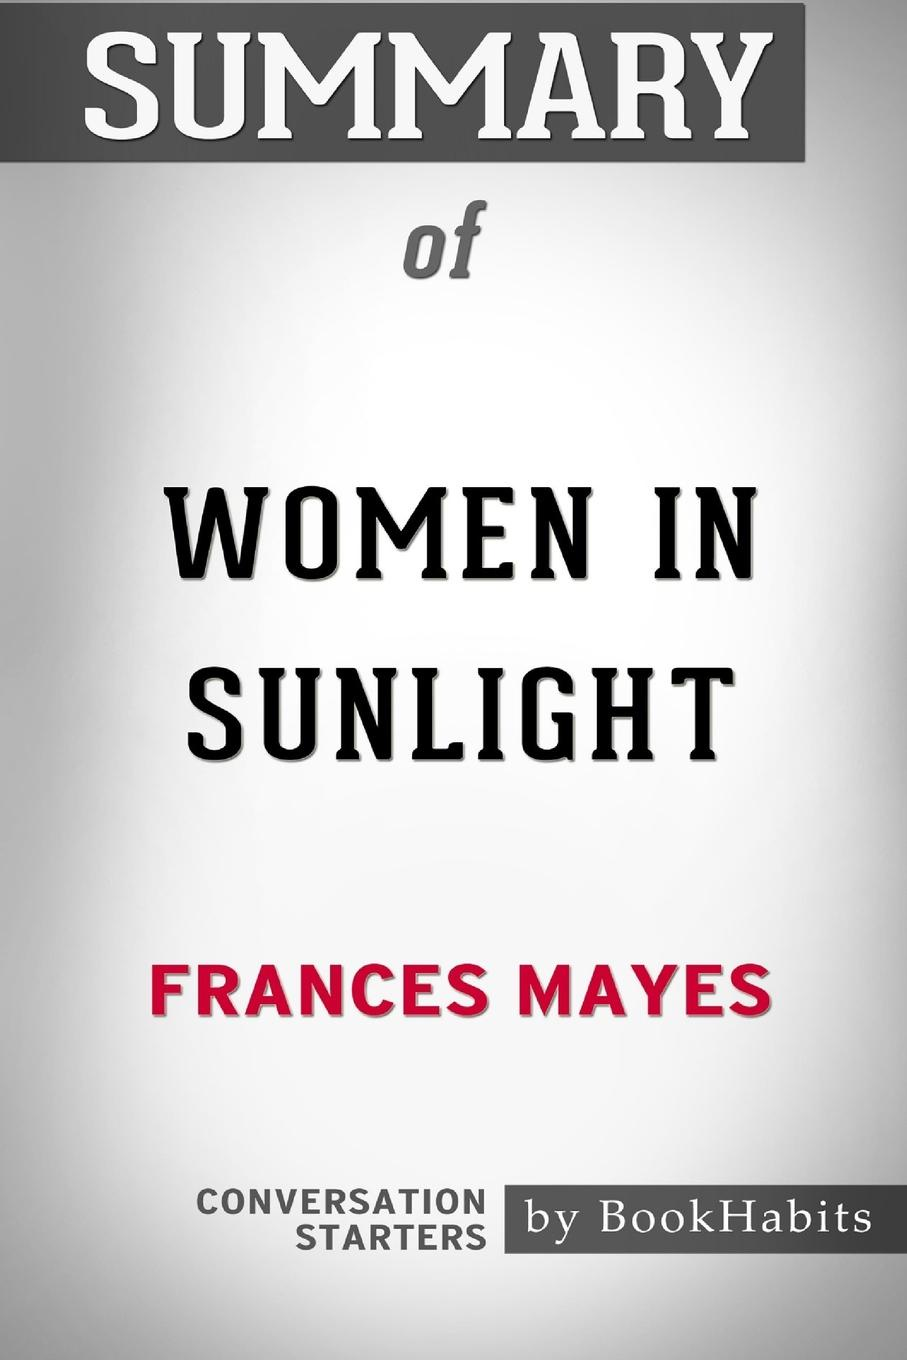 BookHabits Summary of Women in Sunlight by Frances Mayes. Conversation Starters